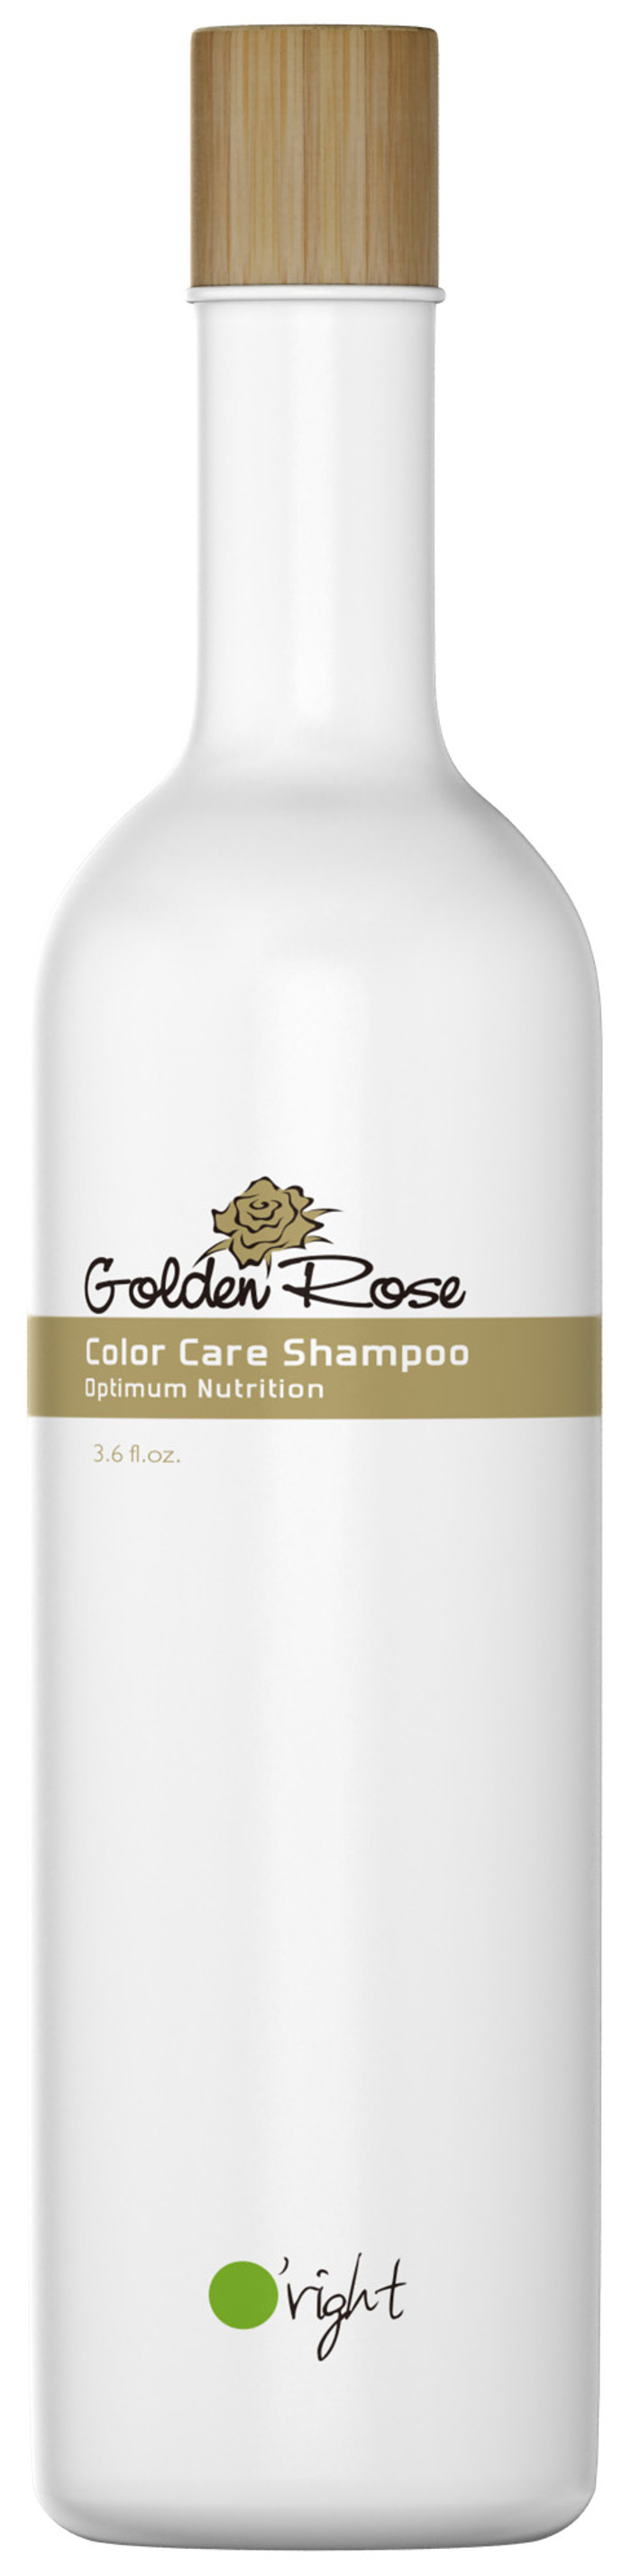 Golden Rose Color Care Shampoo 400ml